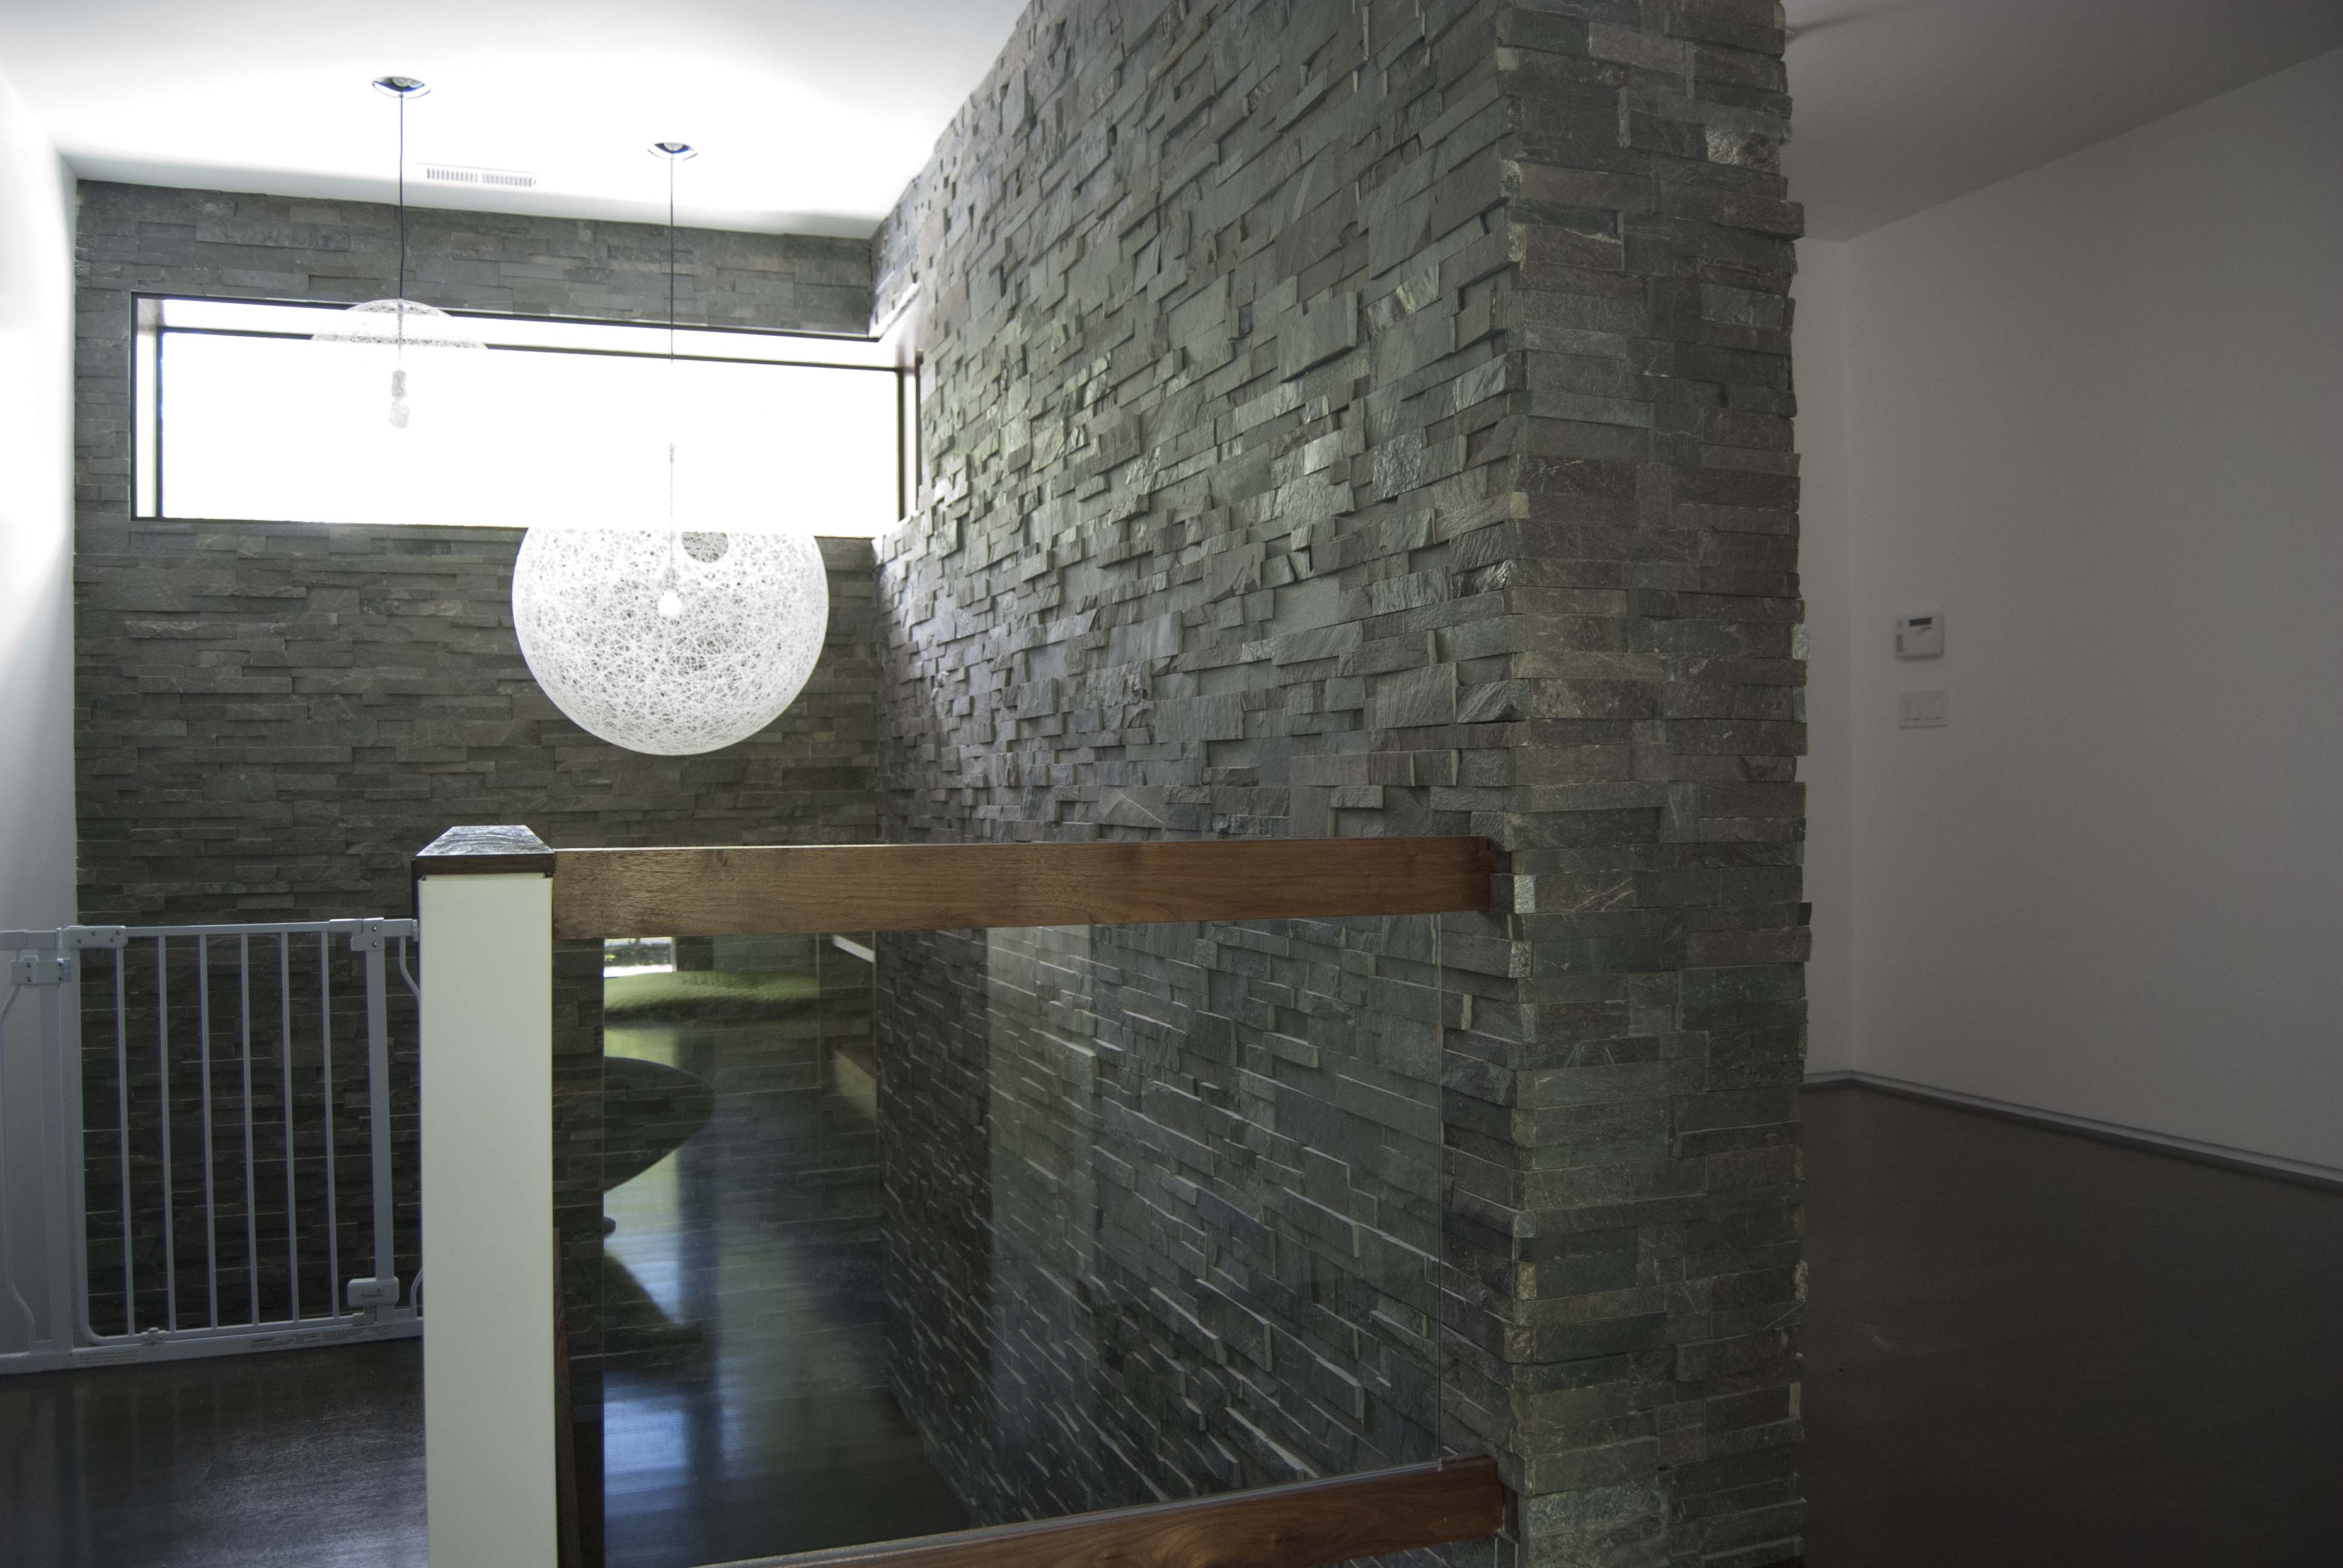 Stone Veneer used in Stairwell of Home